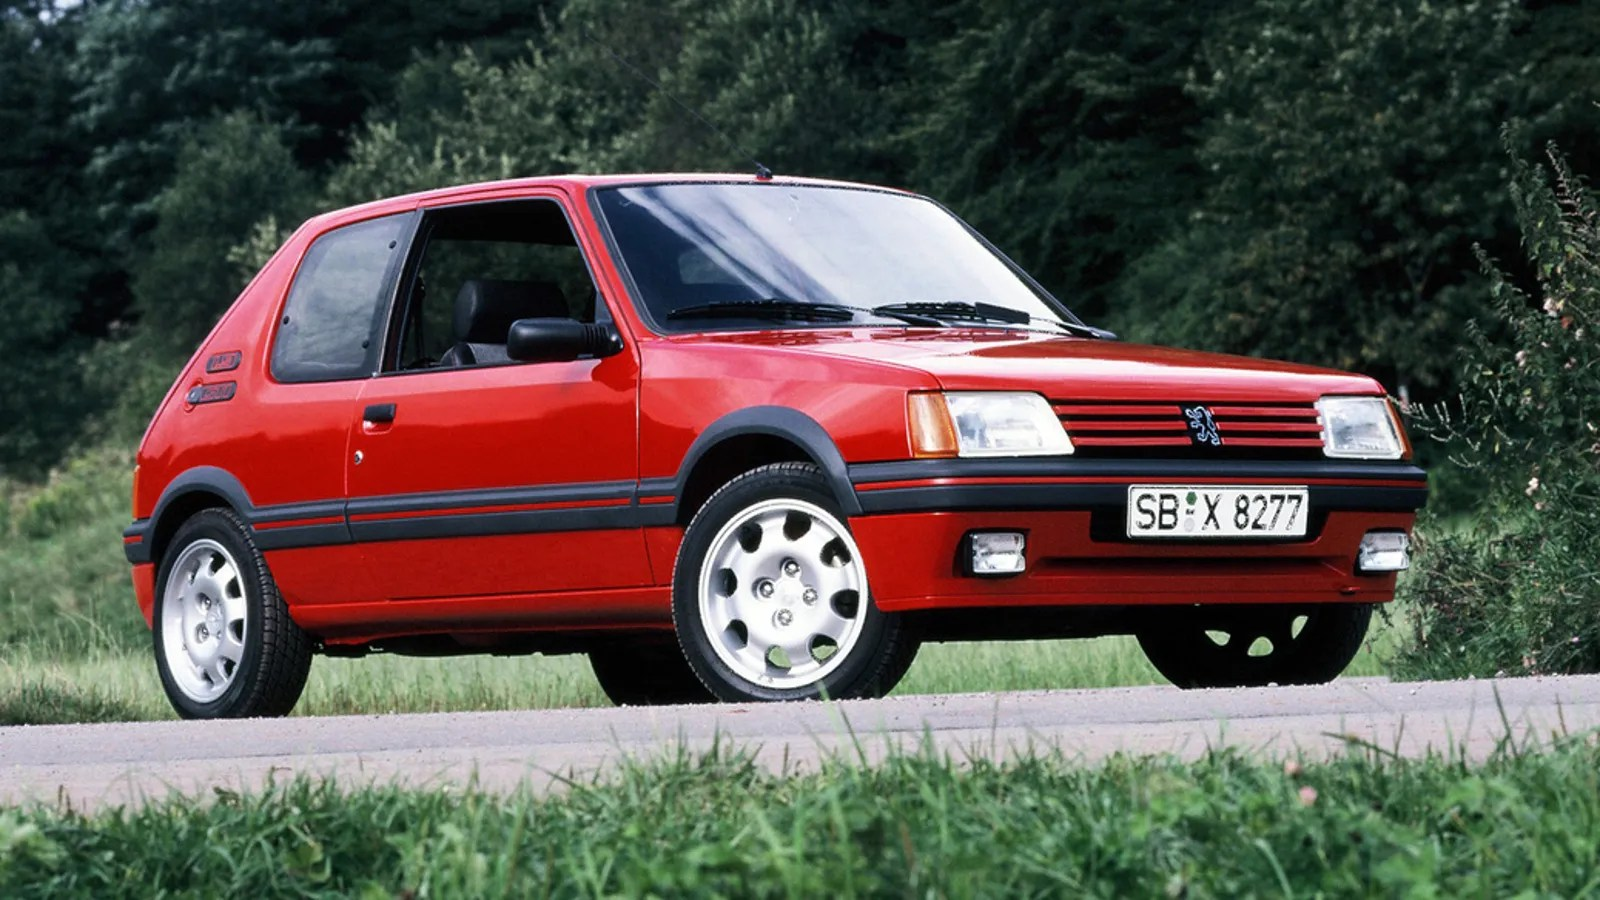 Garage Peugeot Paris The Peugeot 205 Gti Jalopnik Fantasy Garage